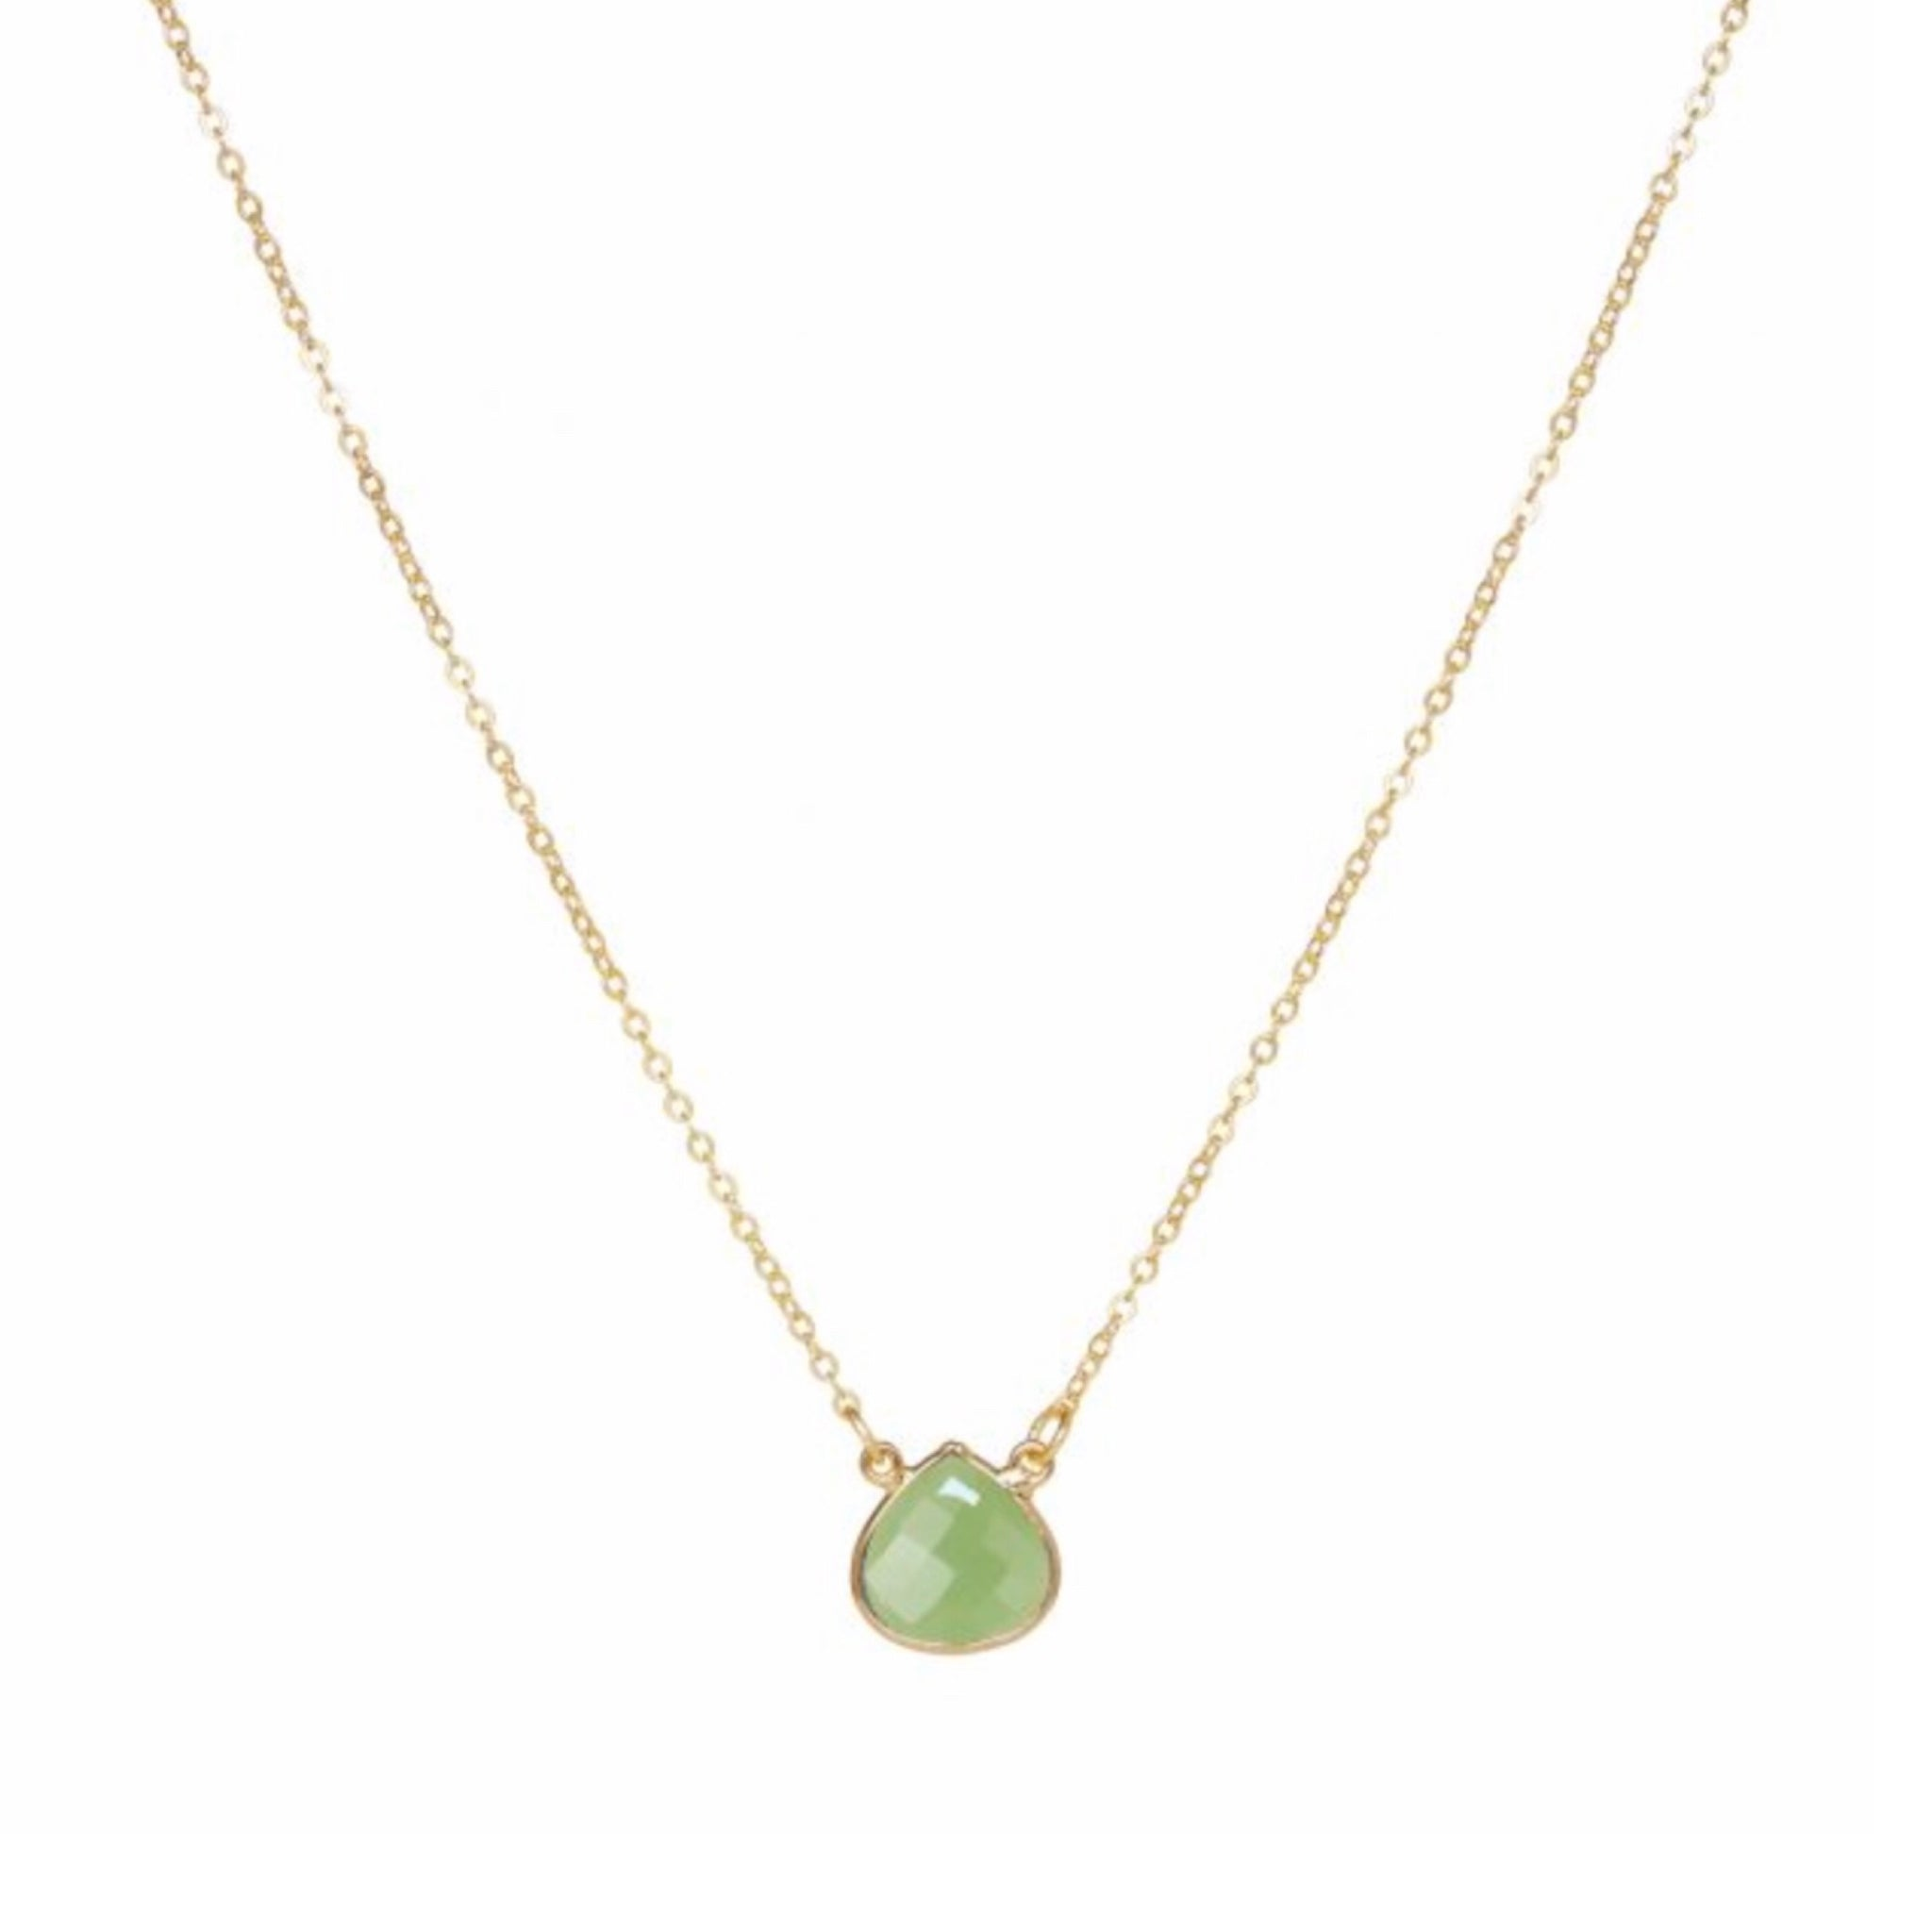 Small Teardrop Necklace Green